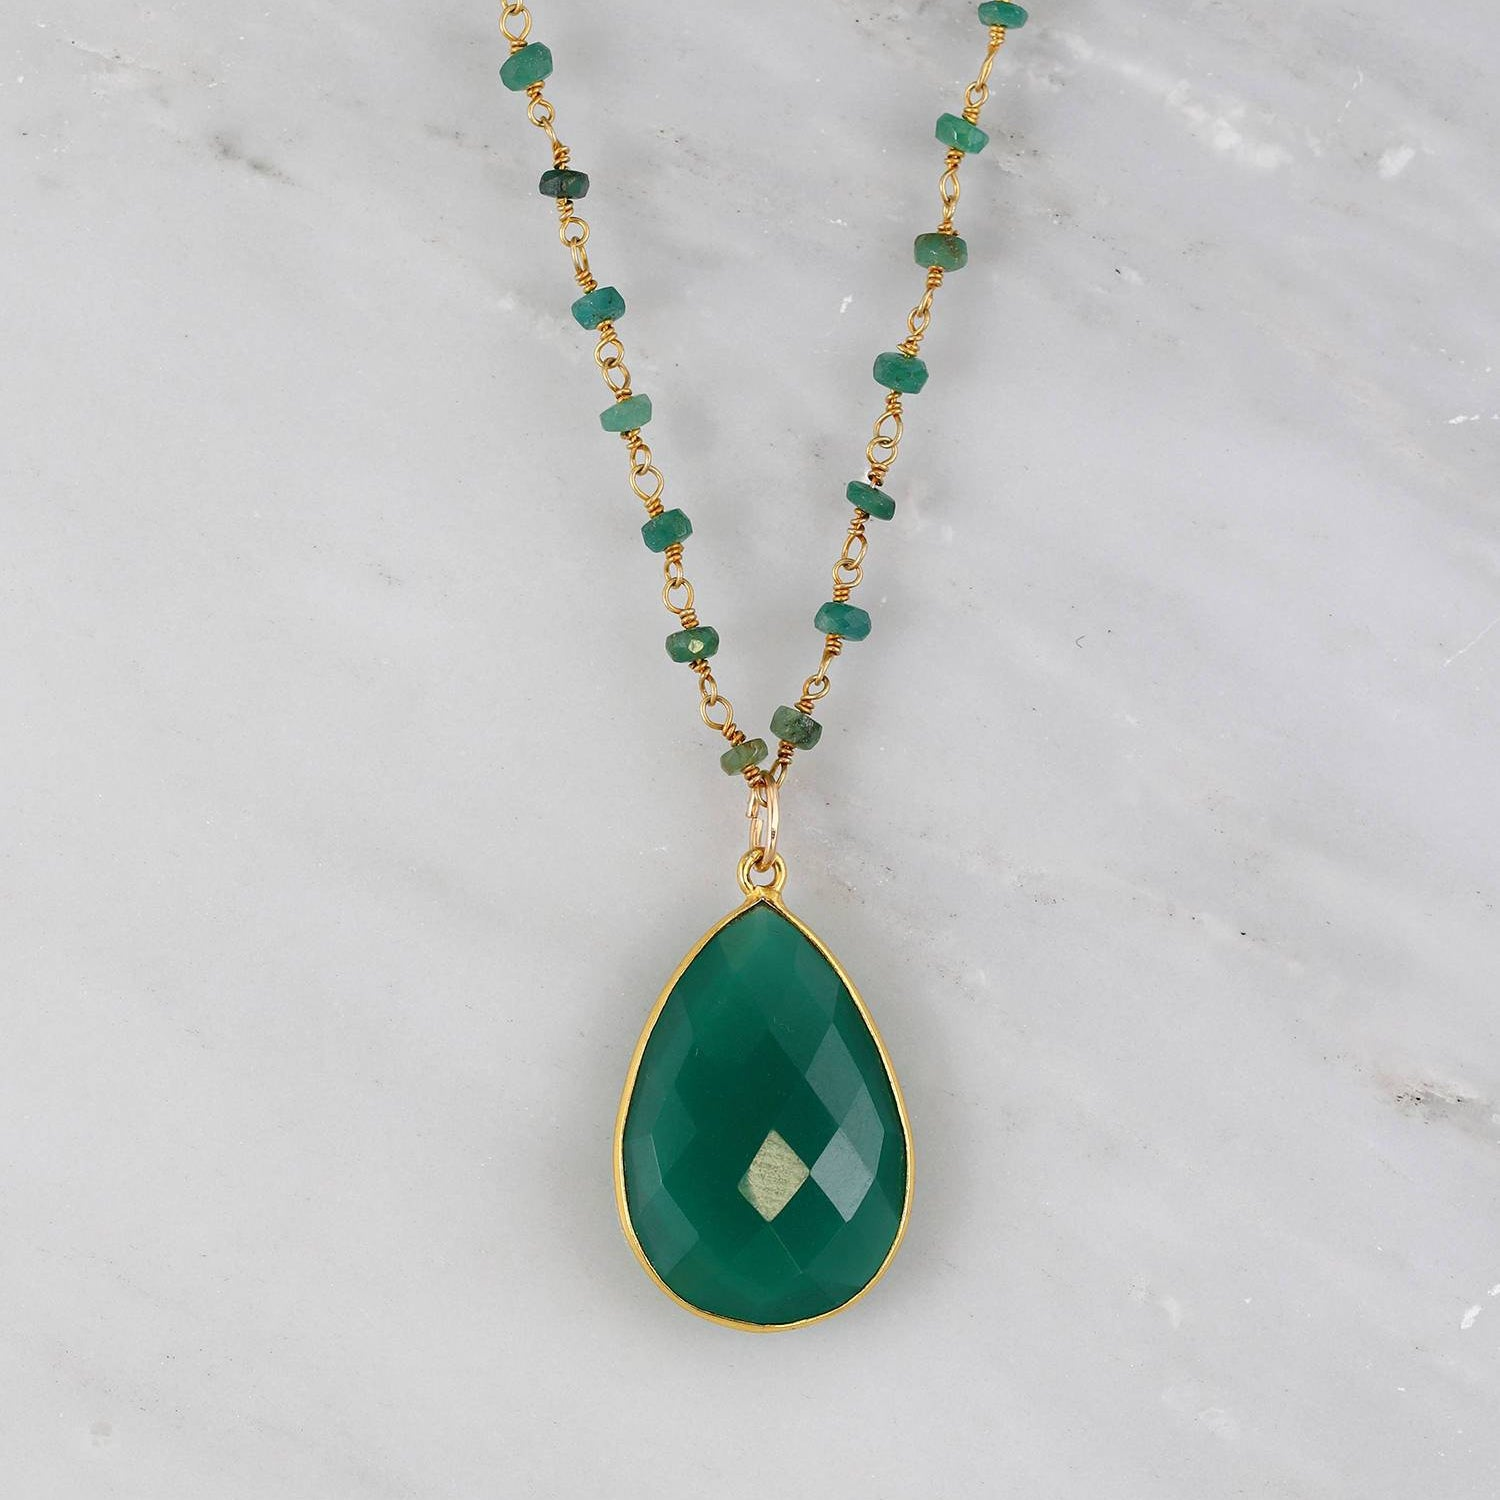 Green Onyx Necklace, Green Wire Wrapped, Valentine's Gift for her, Gold Gemstone Pendent, Wire Wrapped Emerald Necklace, Tear Drop Necklace